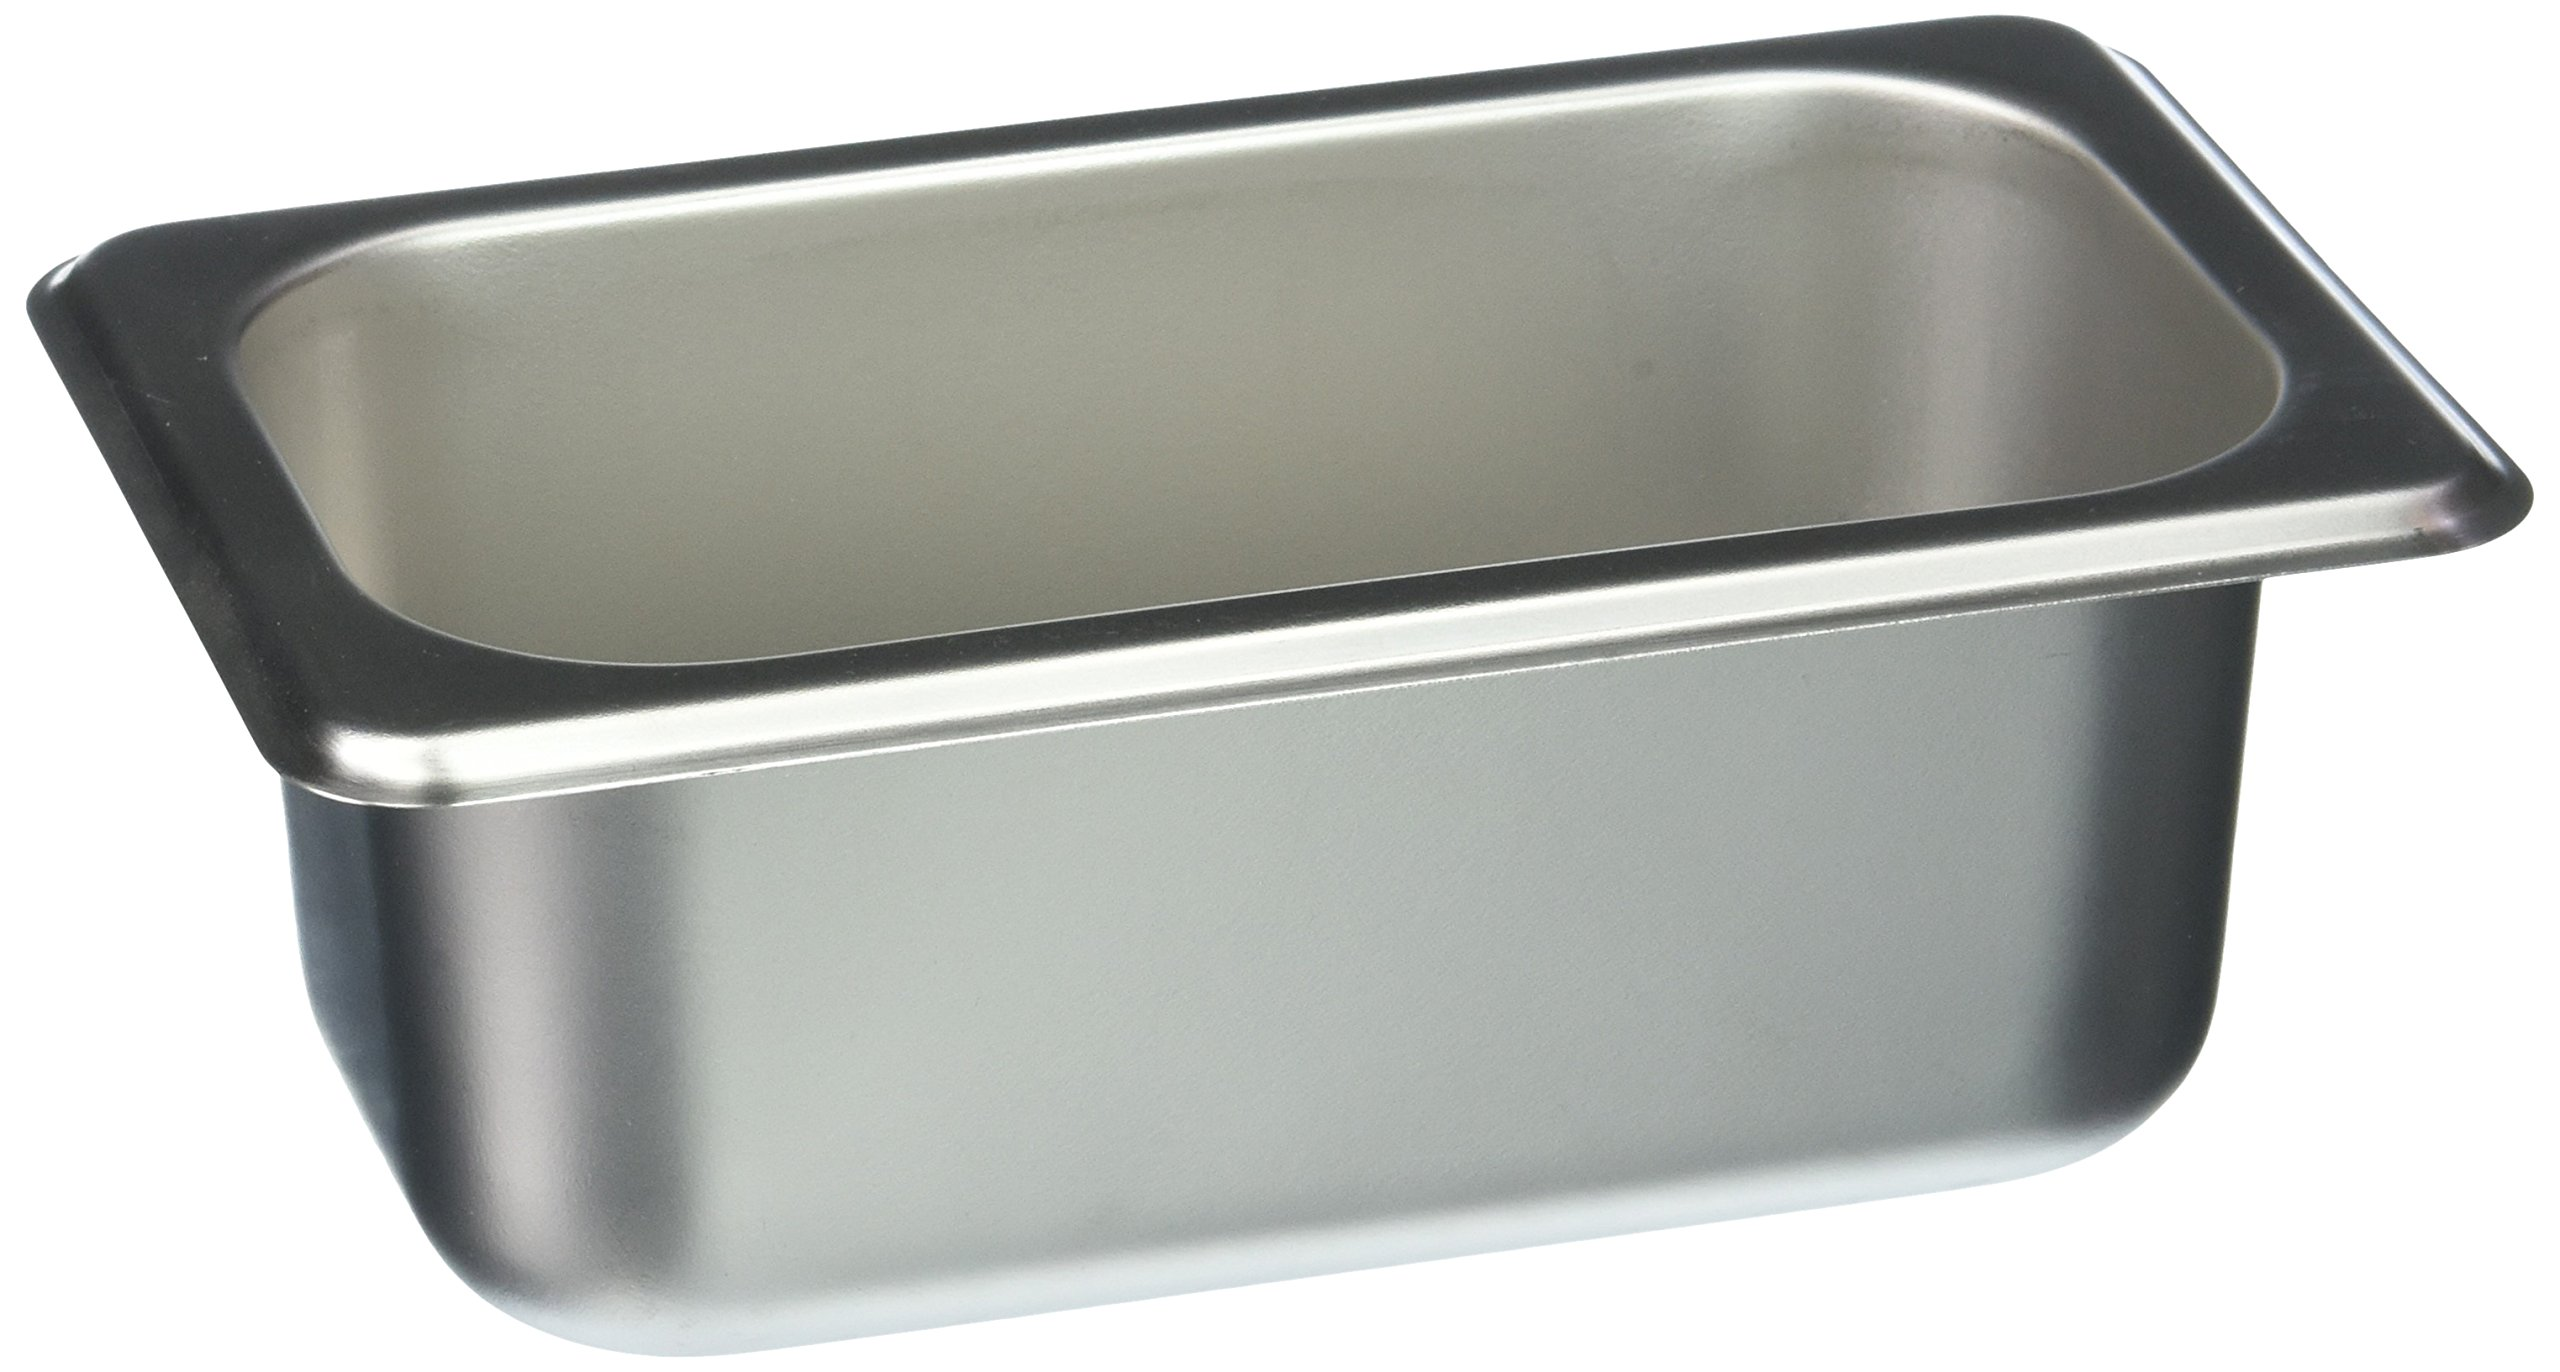 Winco SPN2 1/9 Size Steam Pan, 2 1/2-Inch by Winco (Image #1)